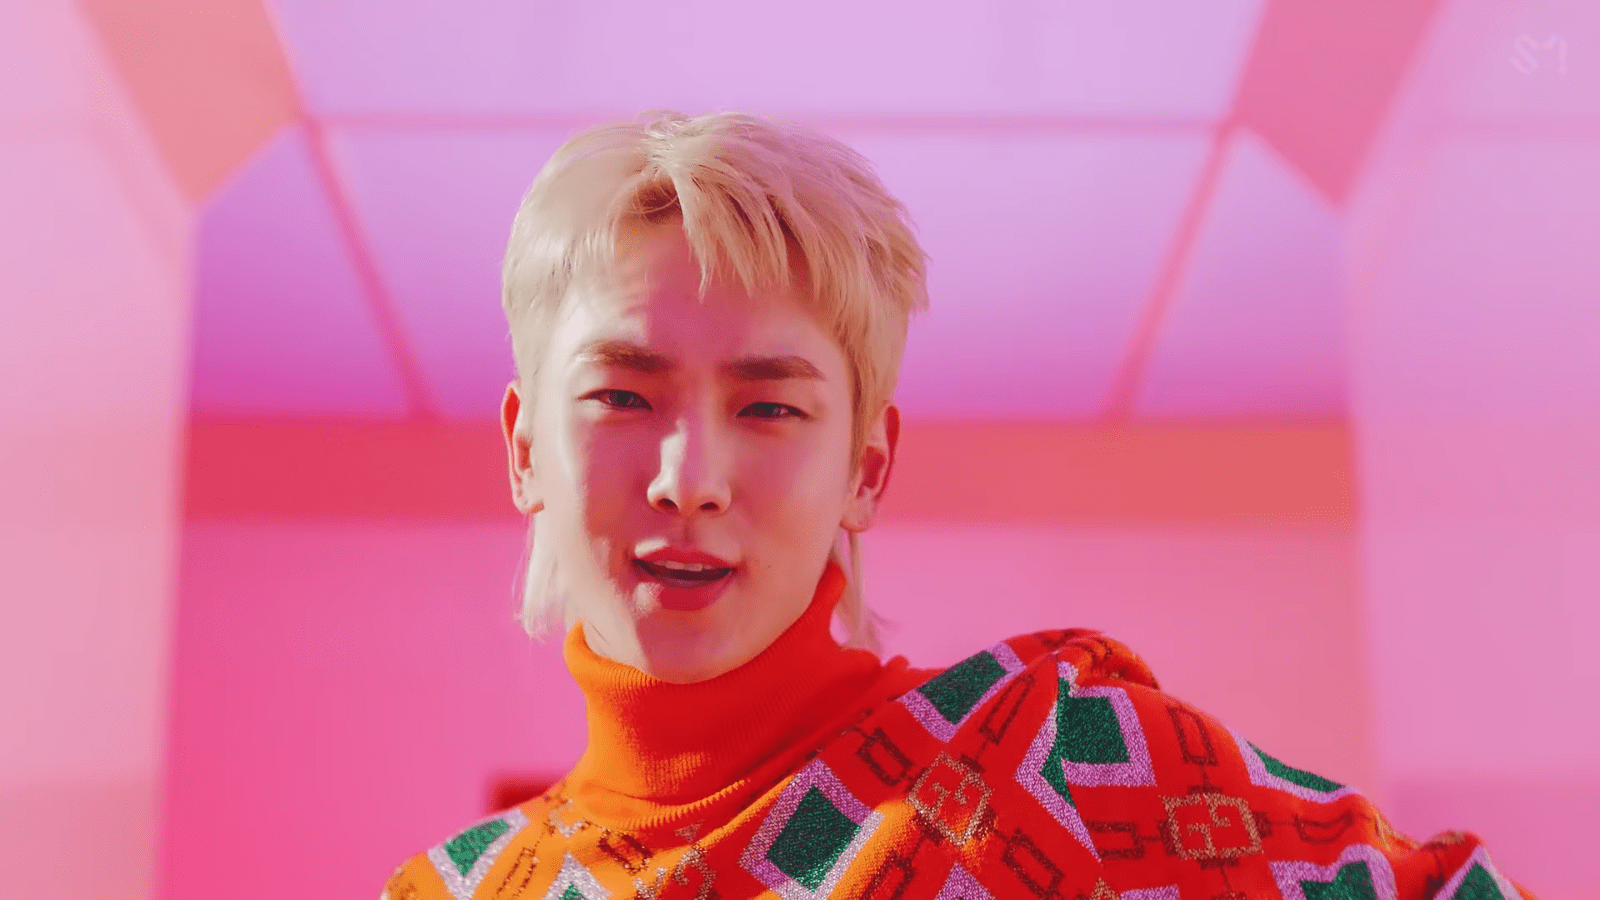 """WATCH: SHINee's Key Says """"I Wanna Be"""" In New MV Featuring (G)I-DLE's Soyeon"""